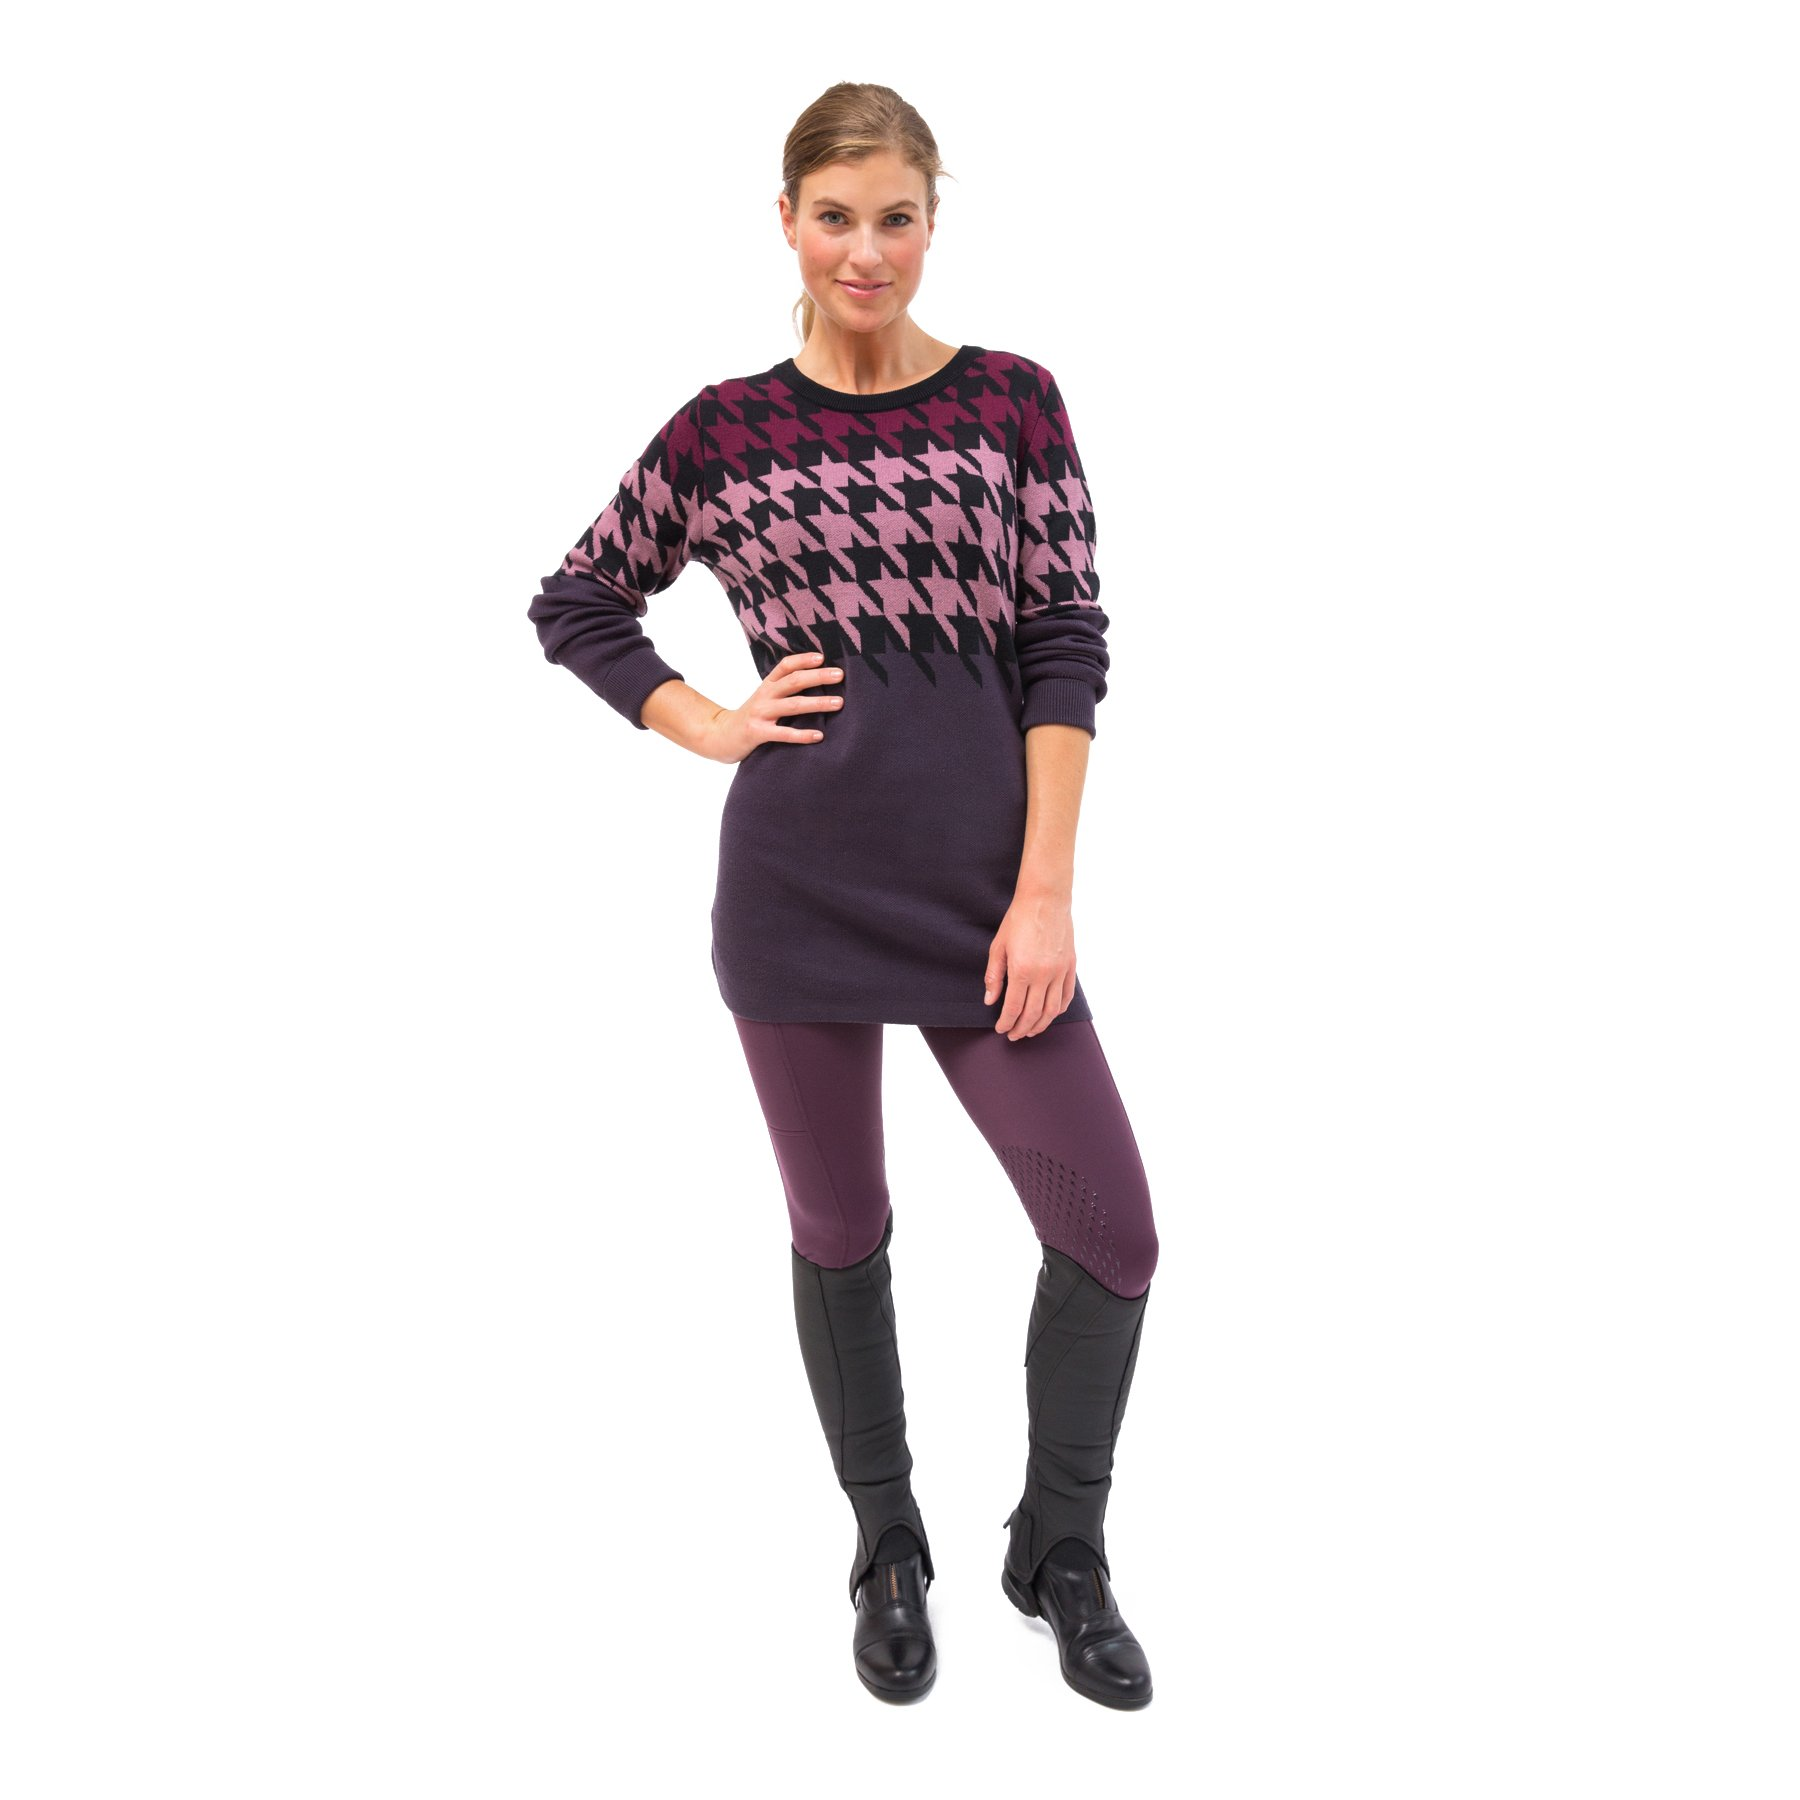 Kerrits-Equestrian-Women-039-s-Houndstooth-Tunic-Sweater-with-Scoop-Neck miniature 5